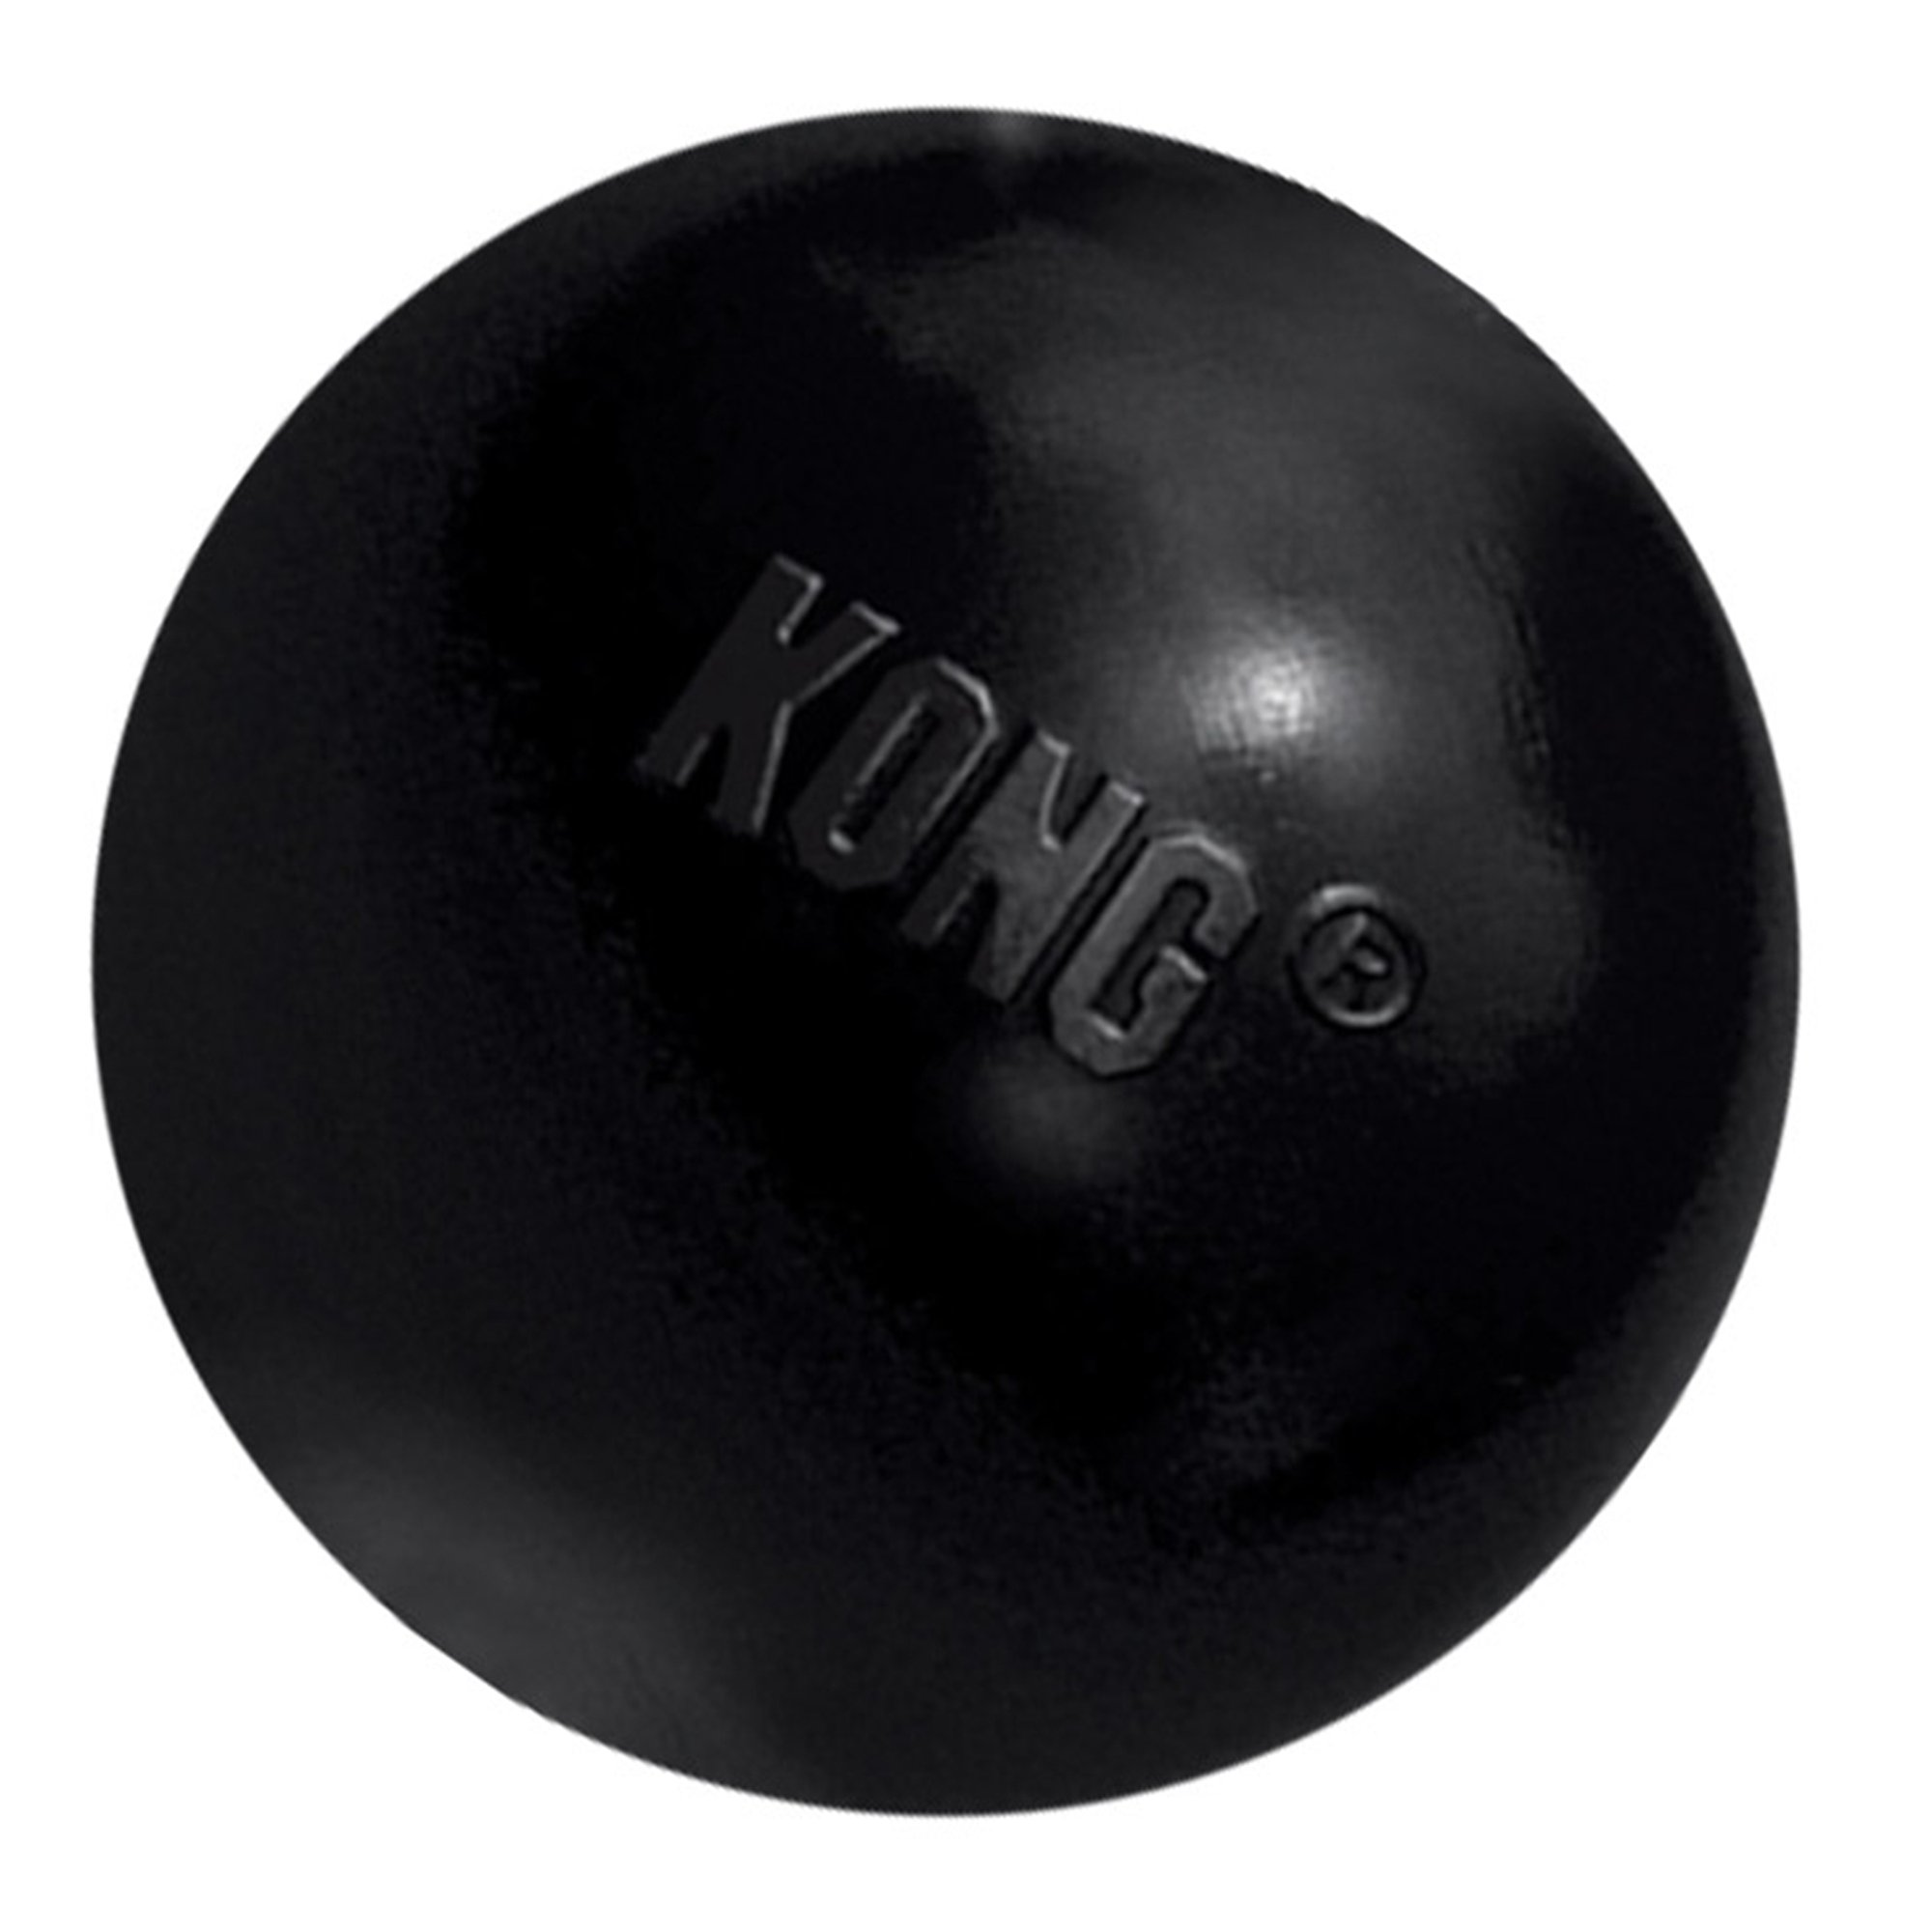 KONG Extreme Black Ball Dog Toy